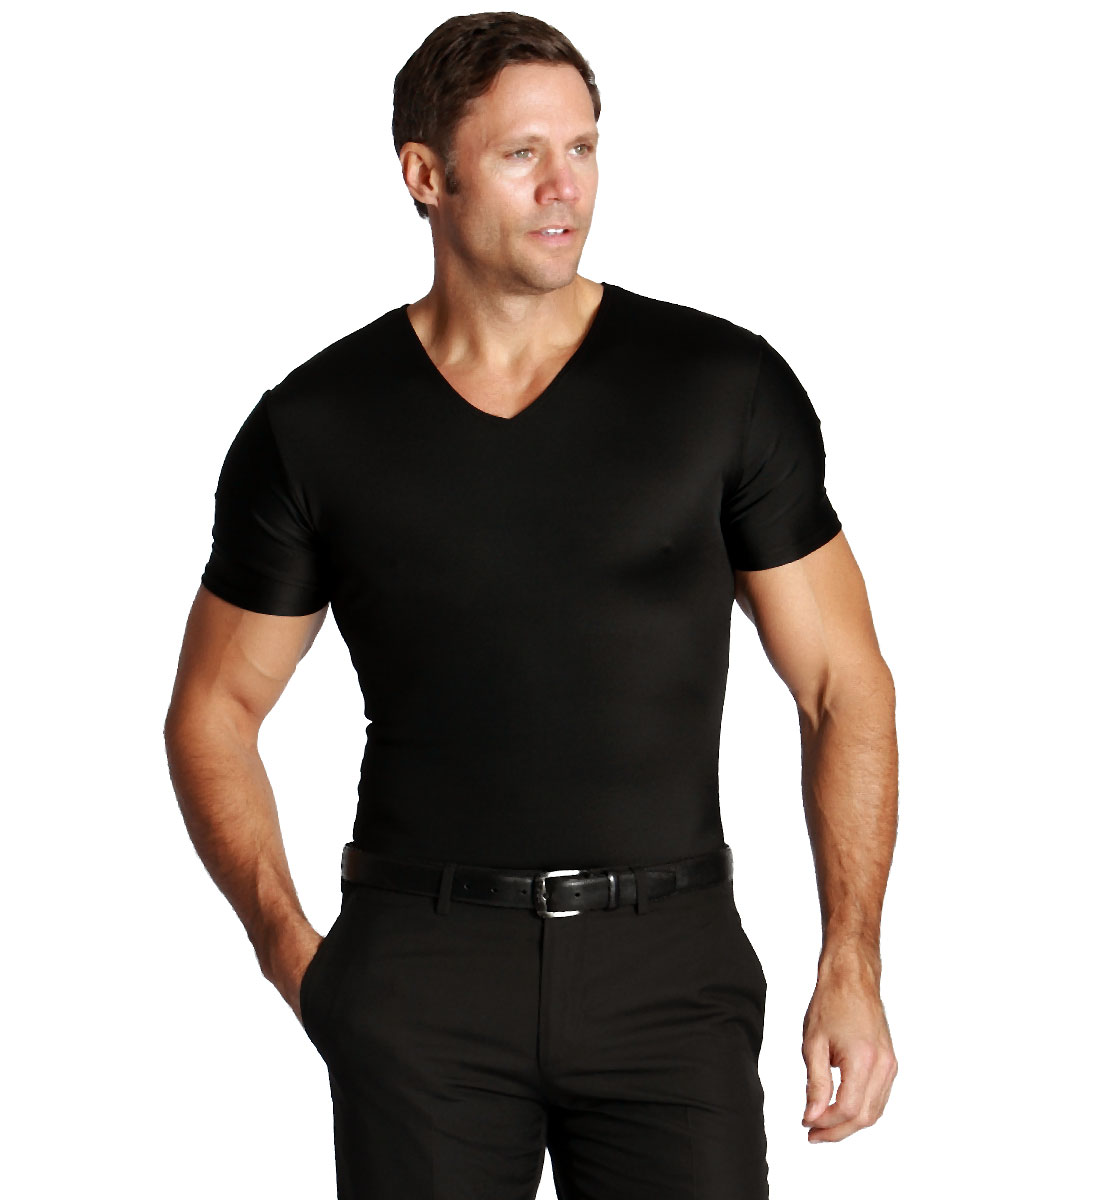 Insta Slim V Neck Men 39 S Firming Compression Tight Under